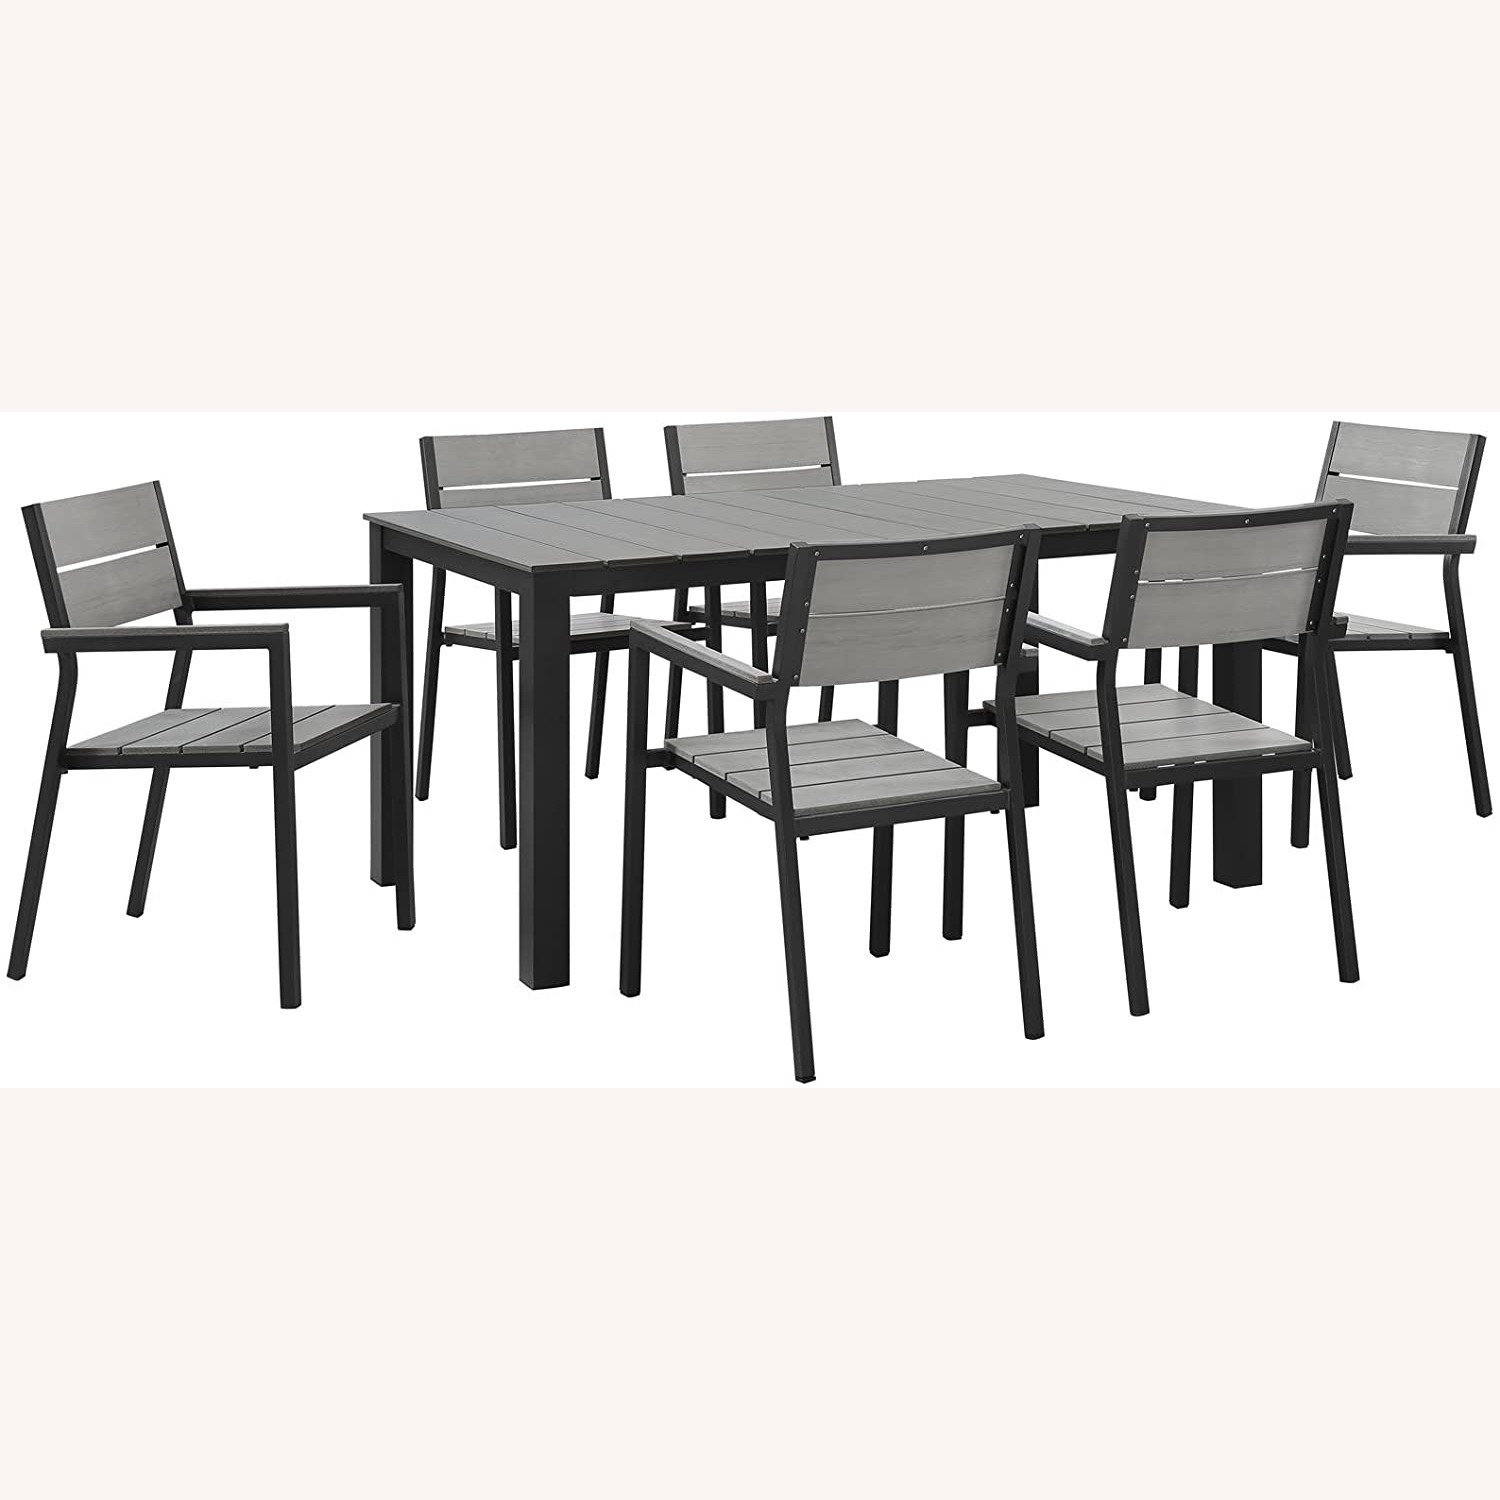 Modern 7-Piece Dining Set In Gray Frame Finish - image-0